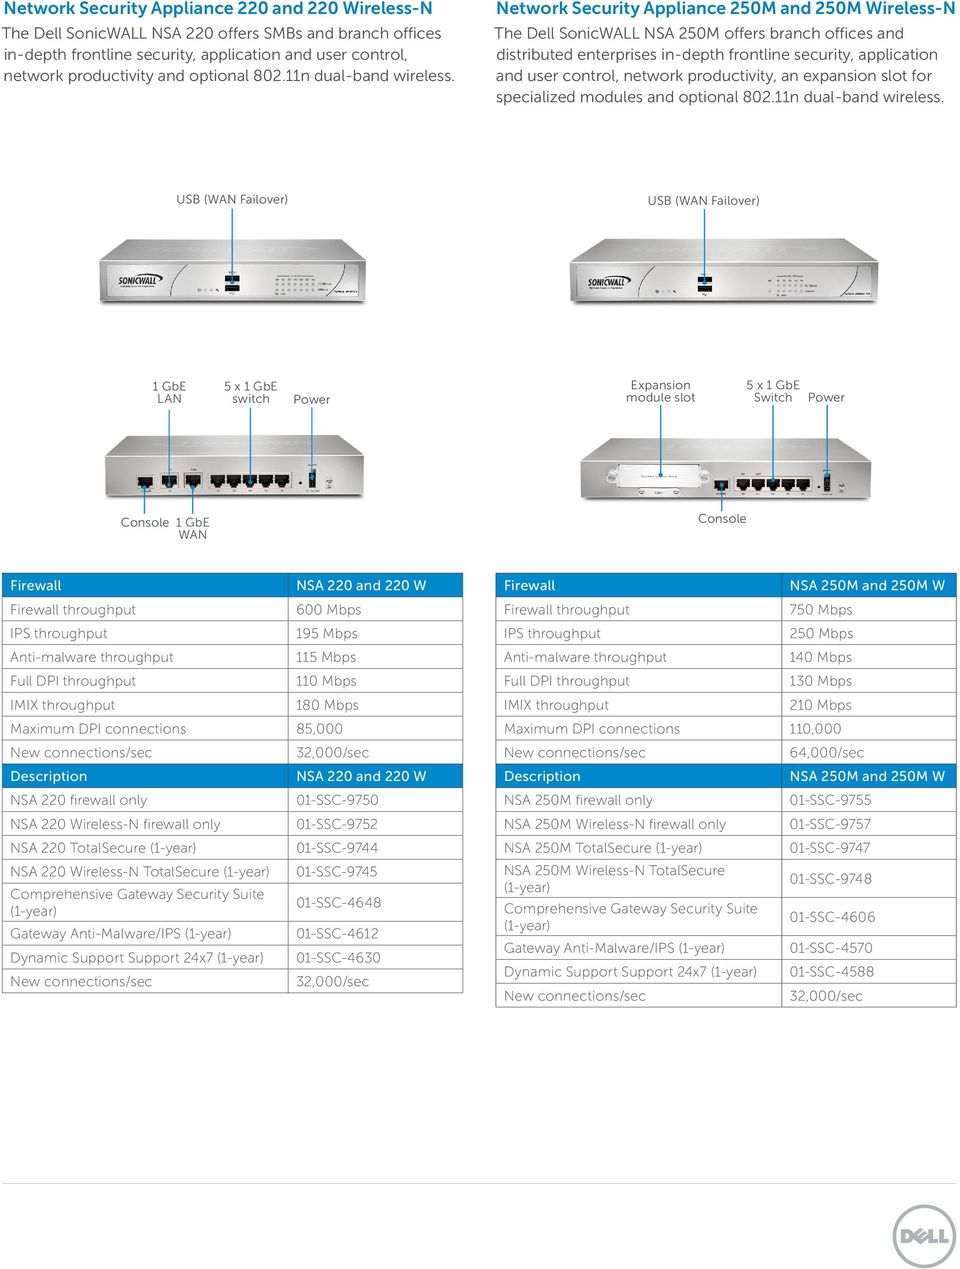 Network Security Appliance 250M and 250M Wireless-N The Dell SonicWALL NSA 250M offers branch offices and distributed enterprises in-depth frontline security, application and user control, network